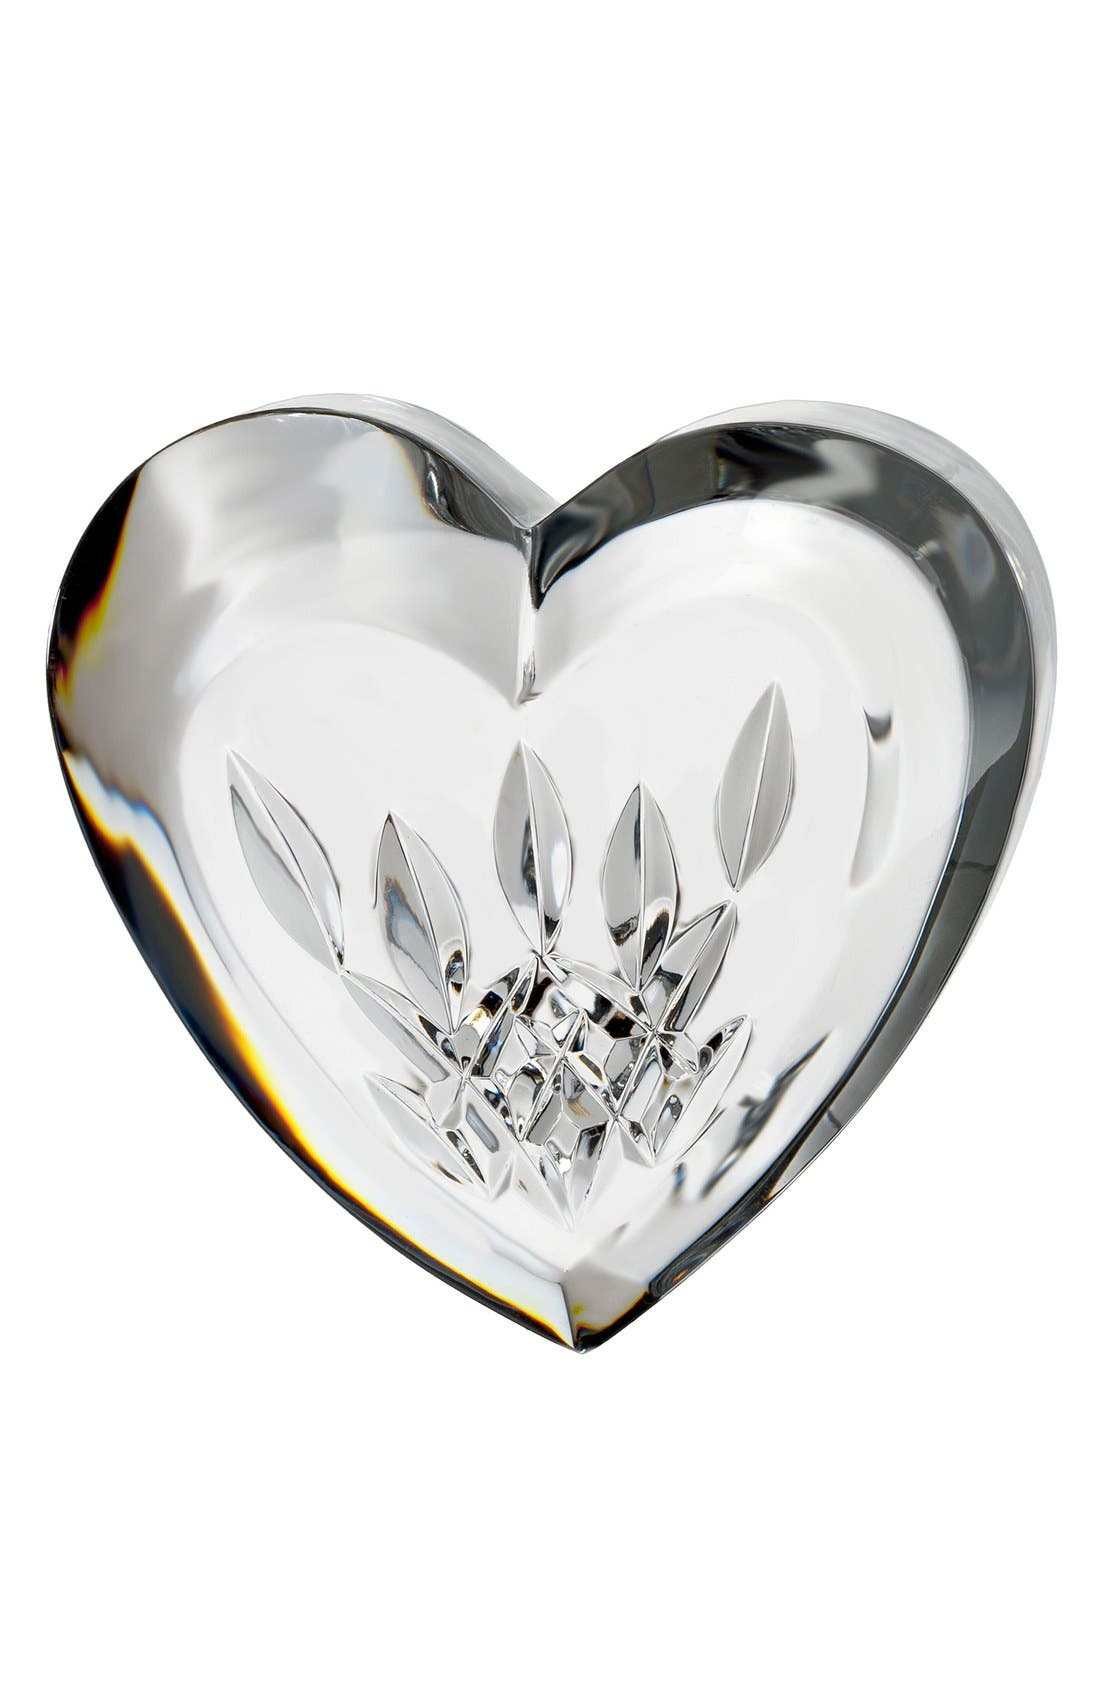 'Lismore' Heart Lead Crystal Paperweight,                         Main,                         color, 100